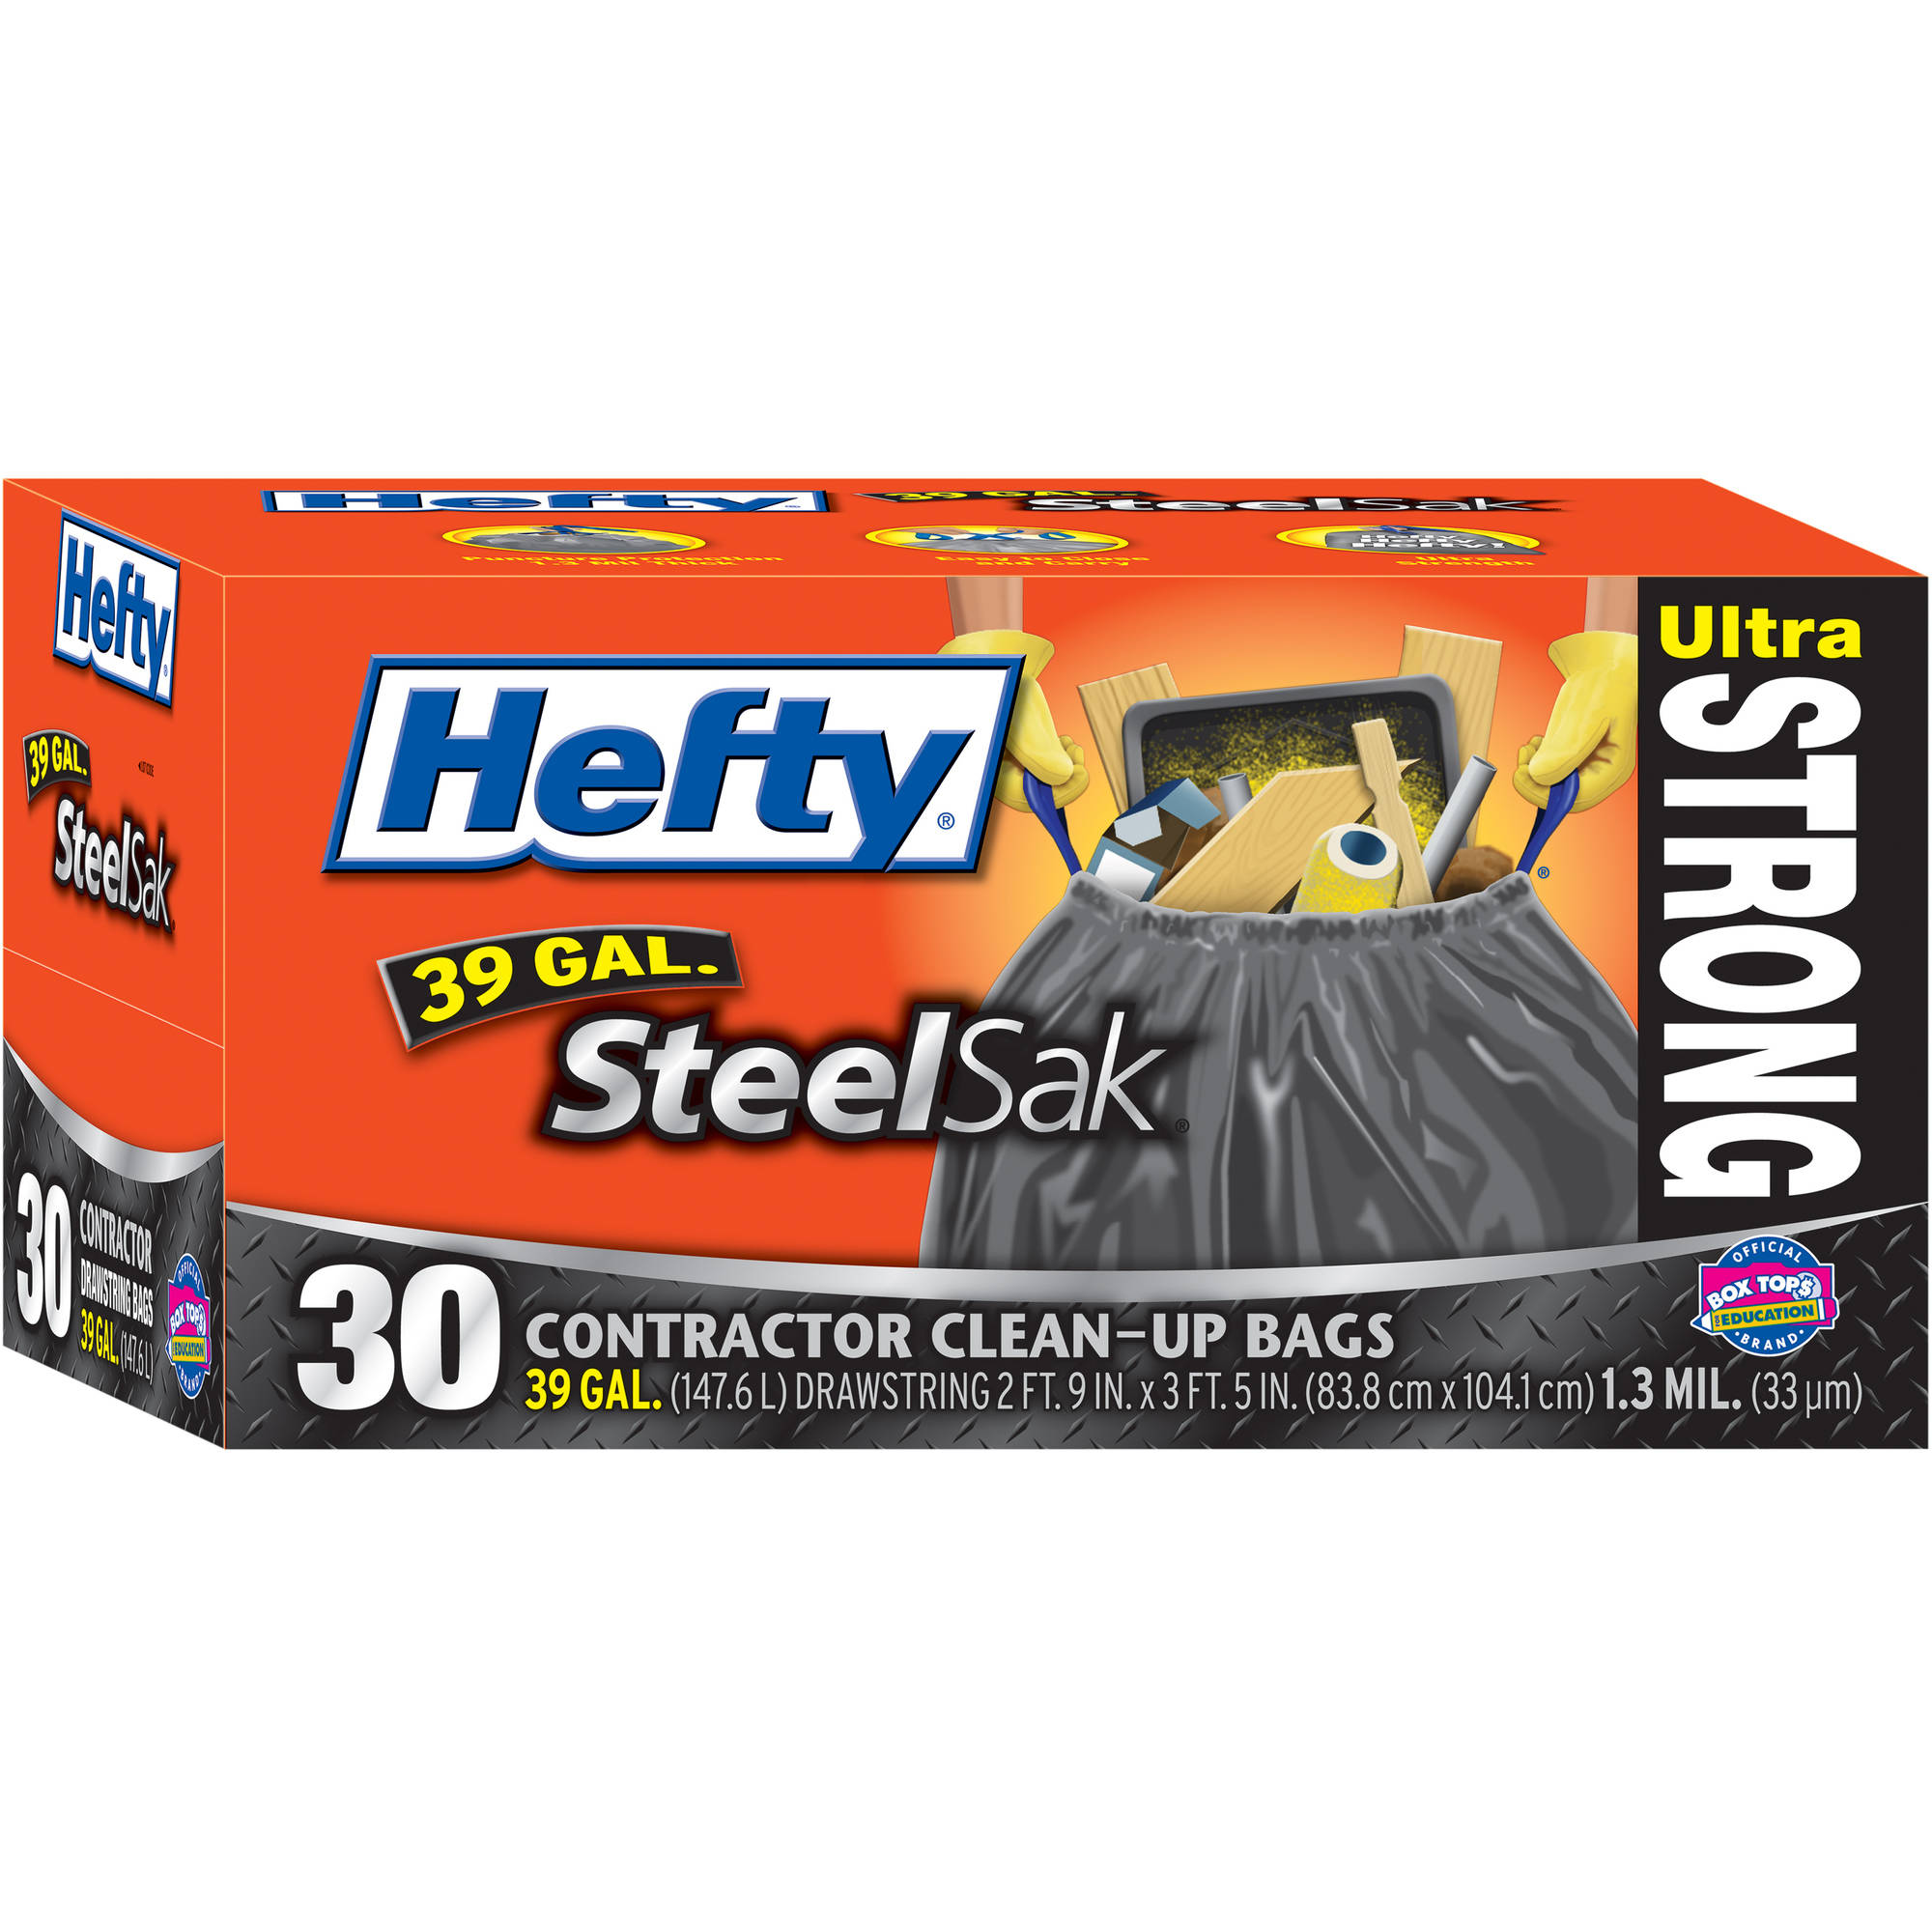 Hefty Steel Sak 39-Gal Trash Bags, 30ct